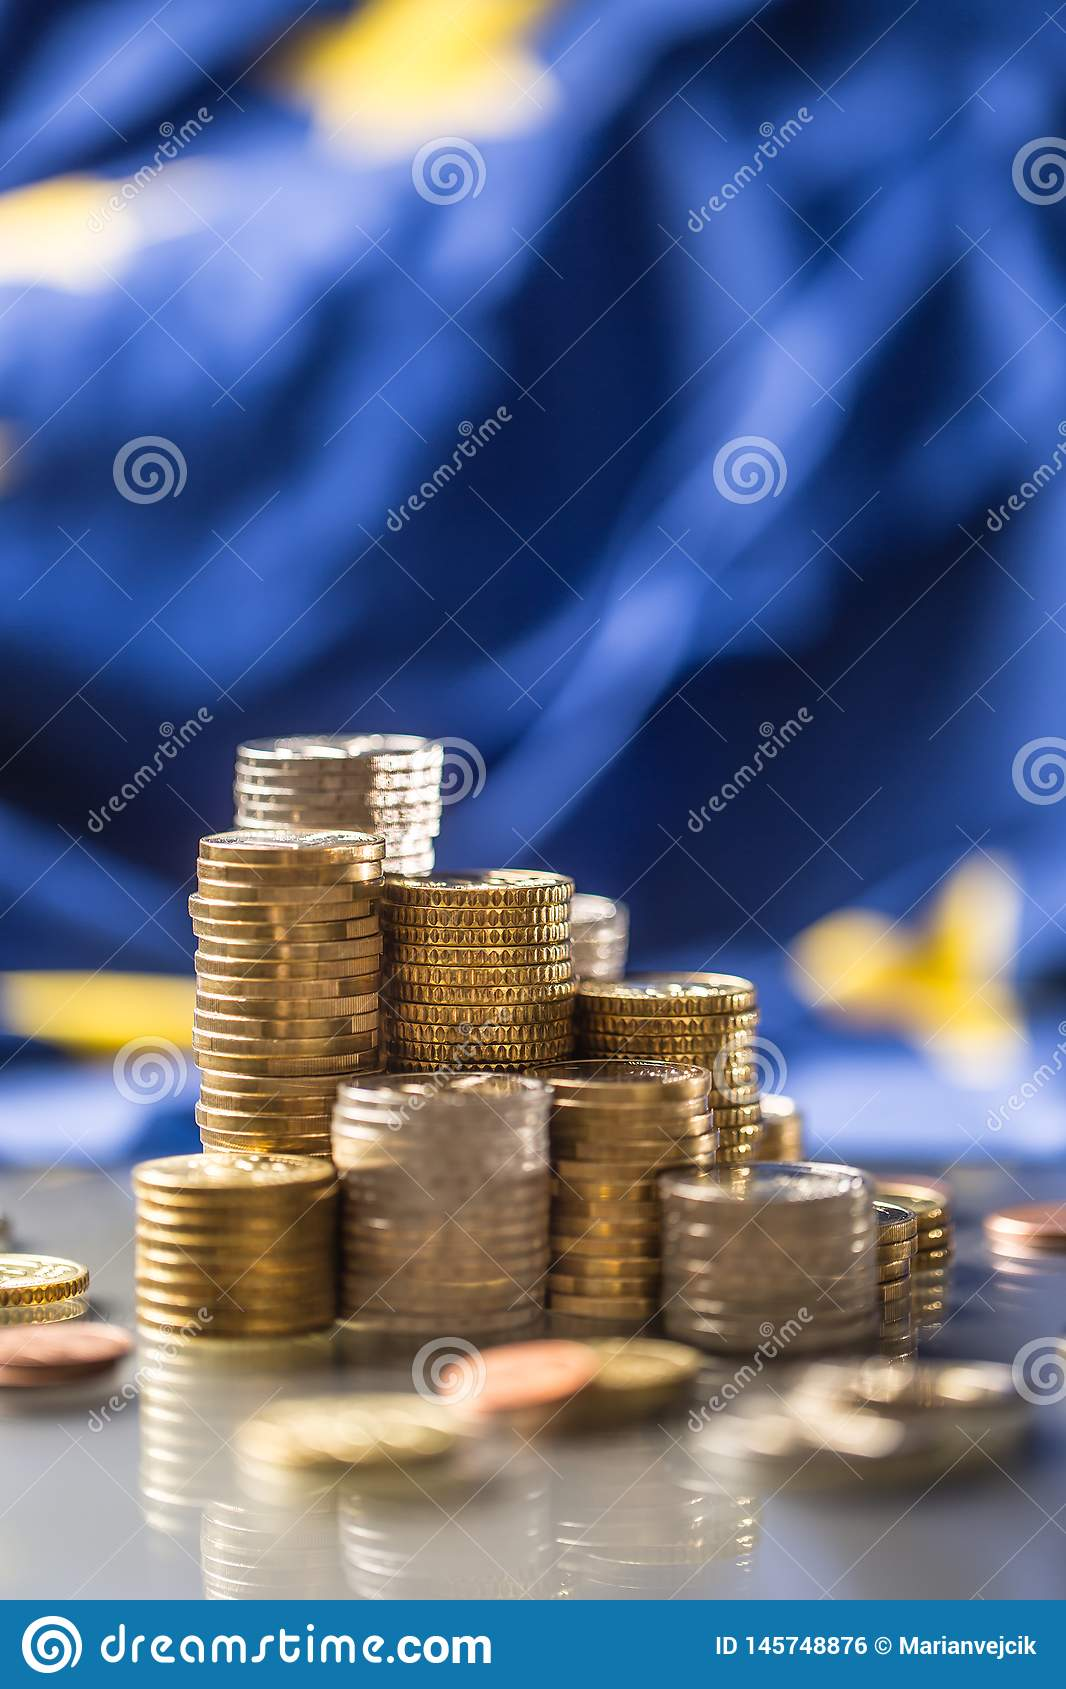 Towers with euro coins and flag of European Union in the background